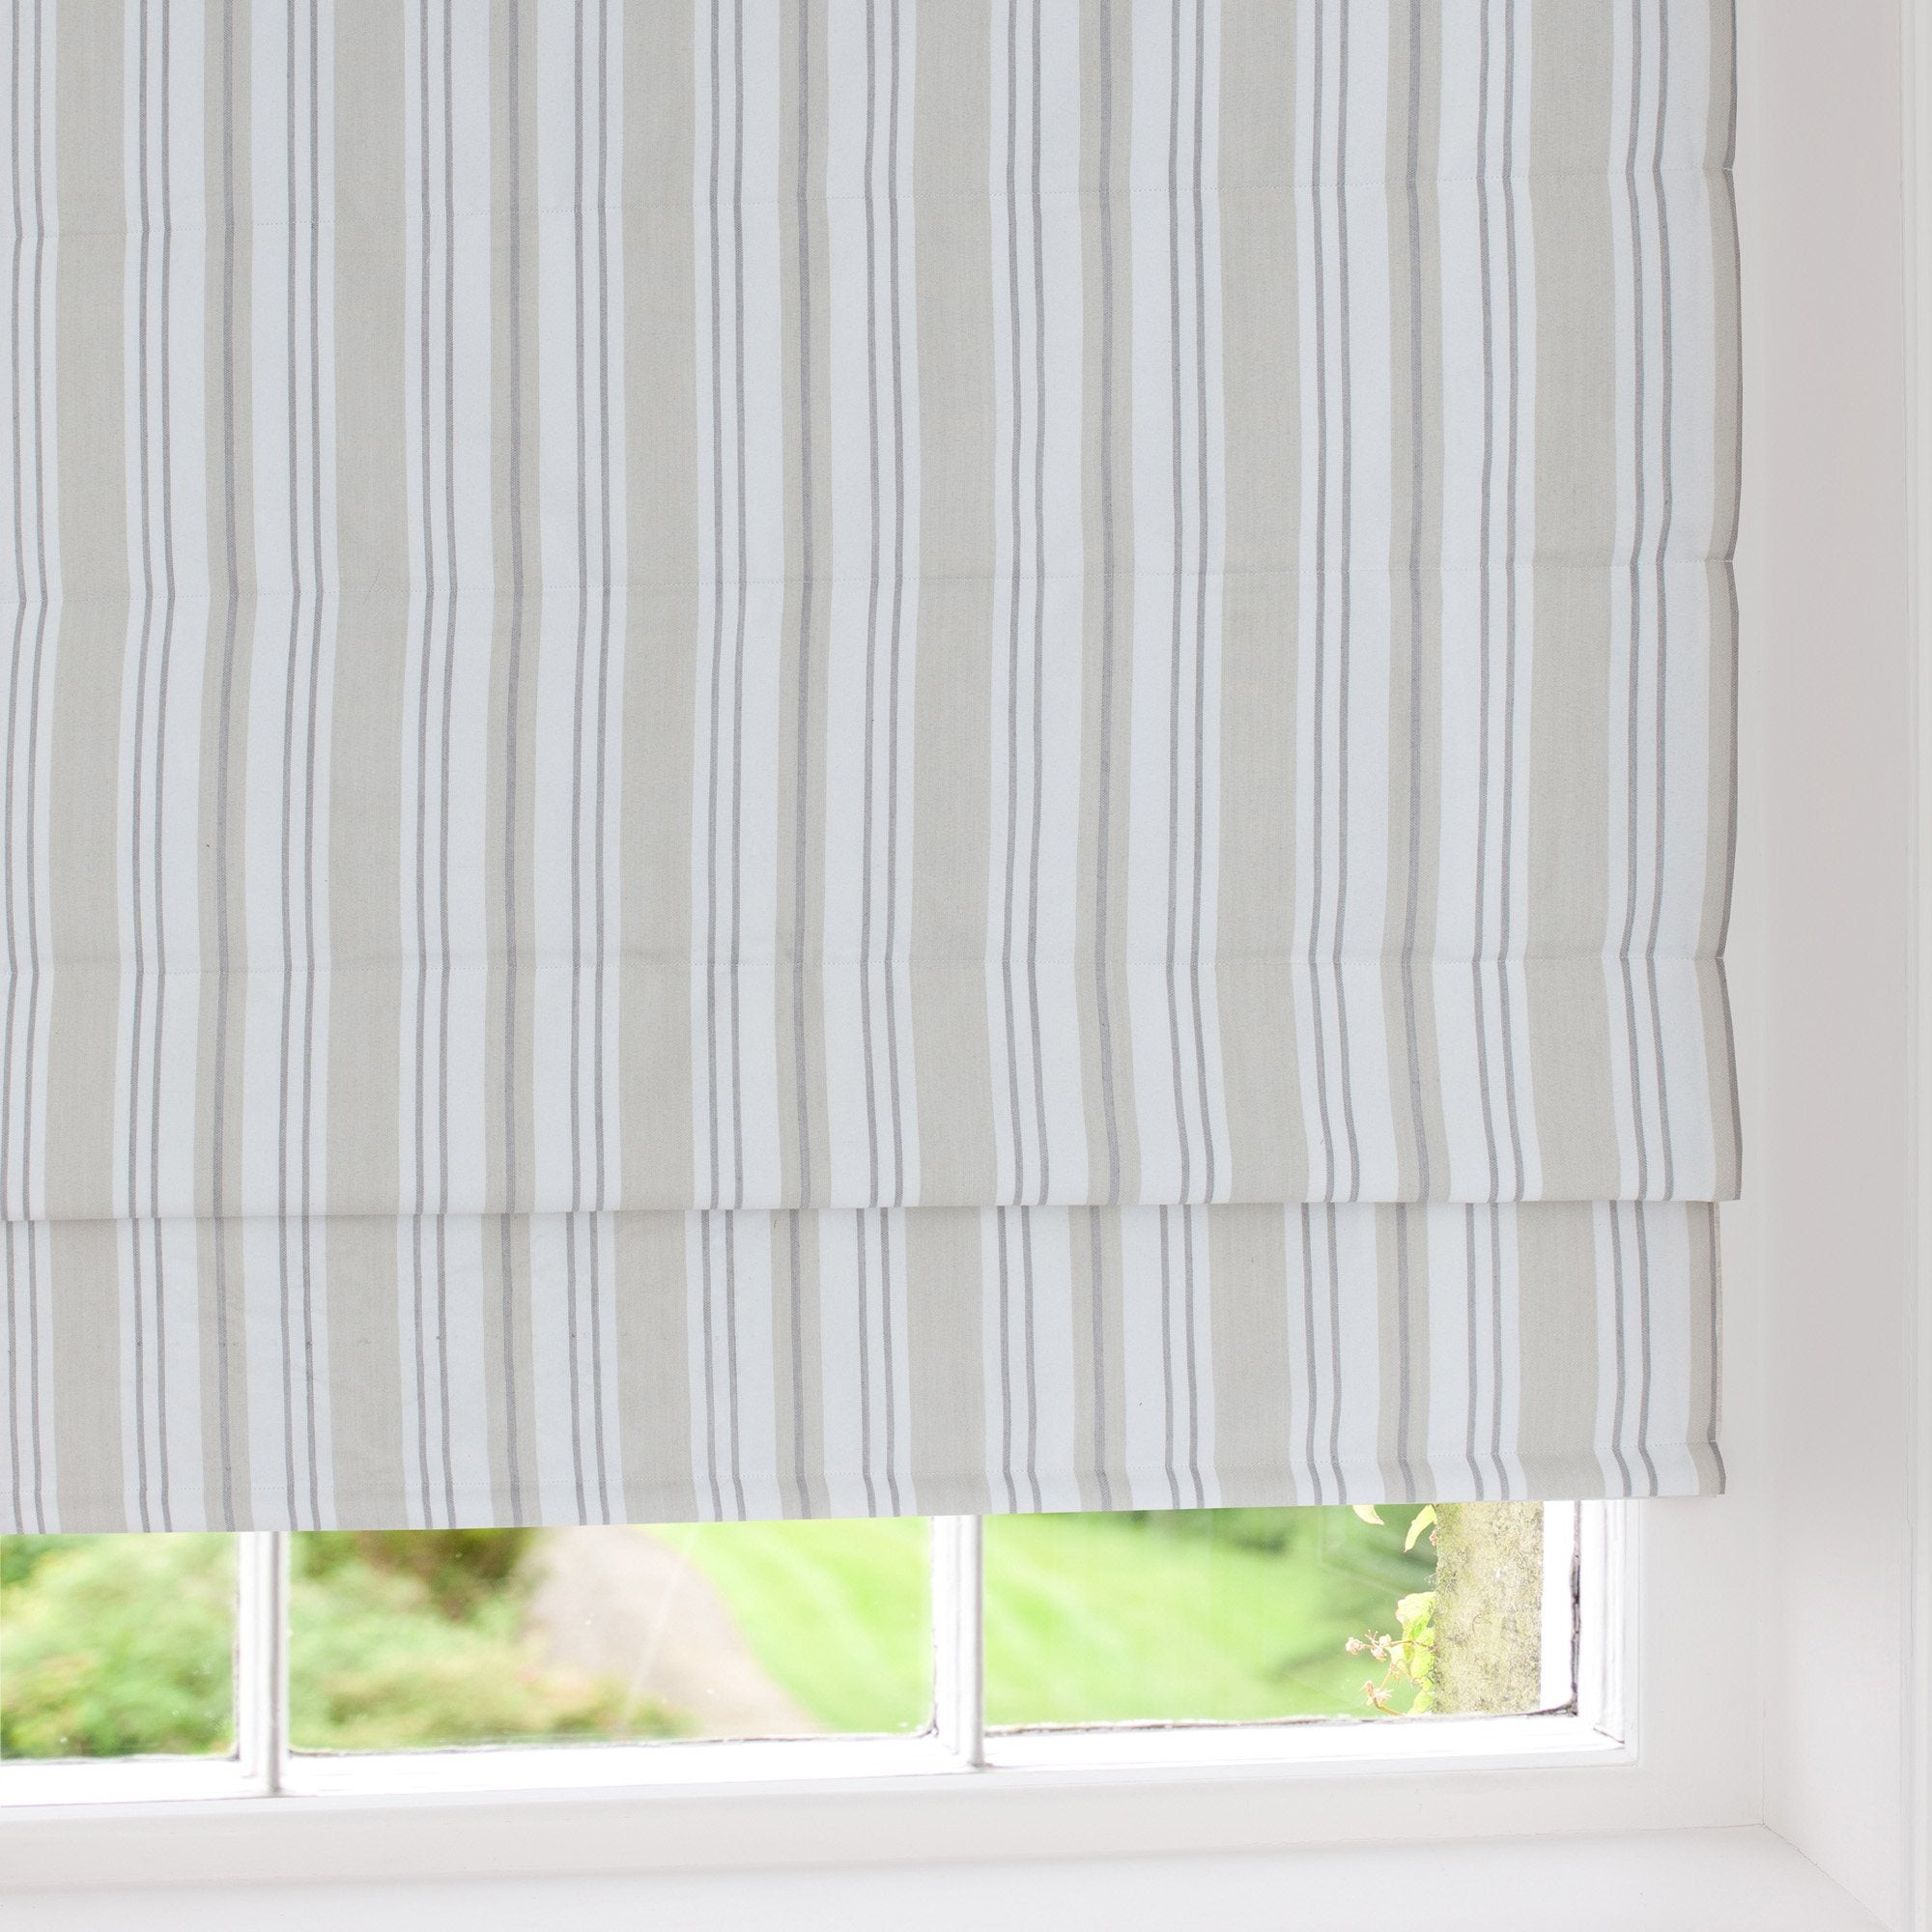 New Haven Blackout Roman Blinds